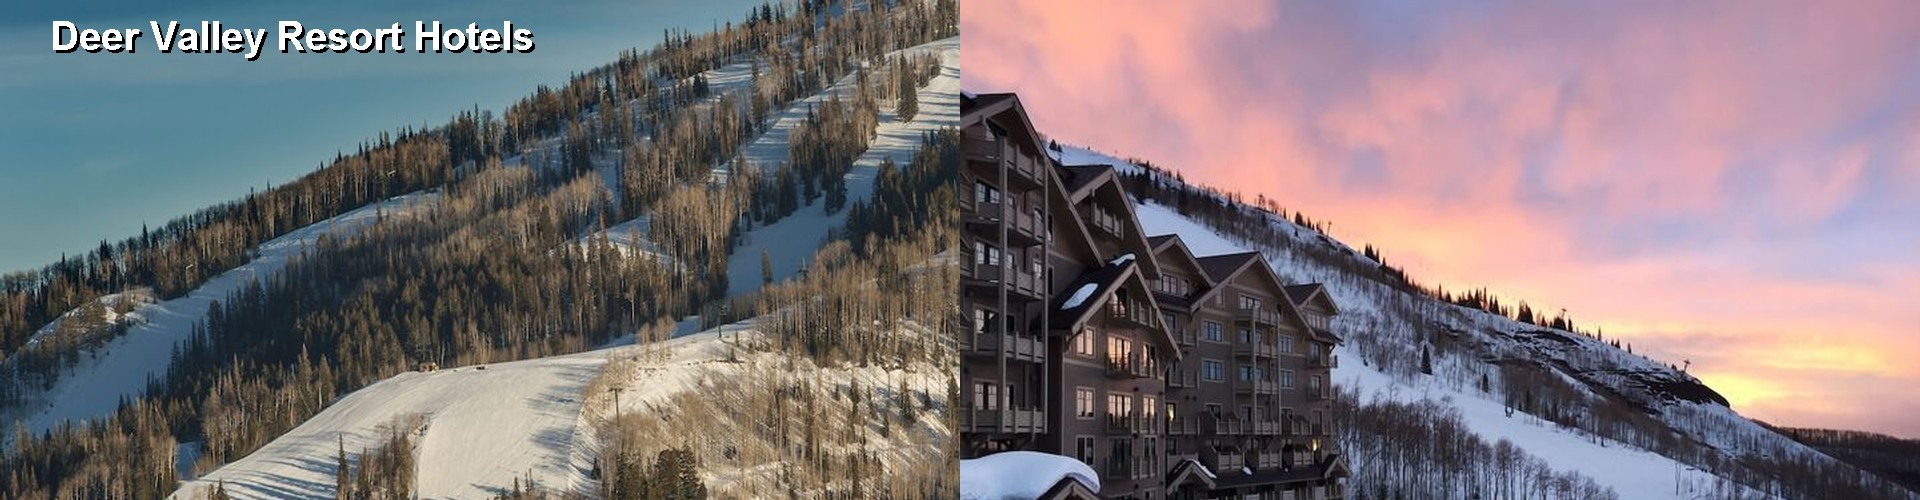 5 Best Hotels near Deer Valley Resort